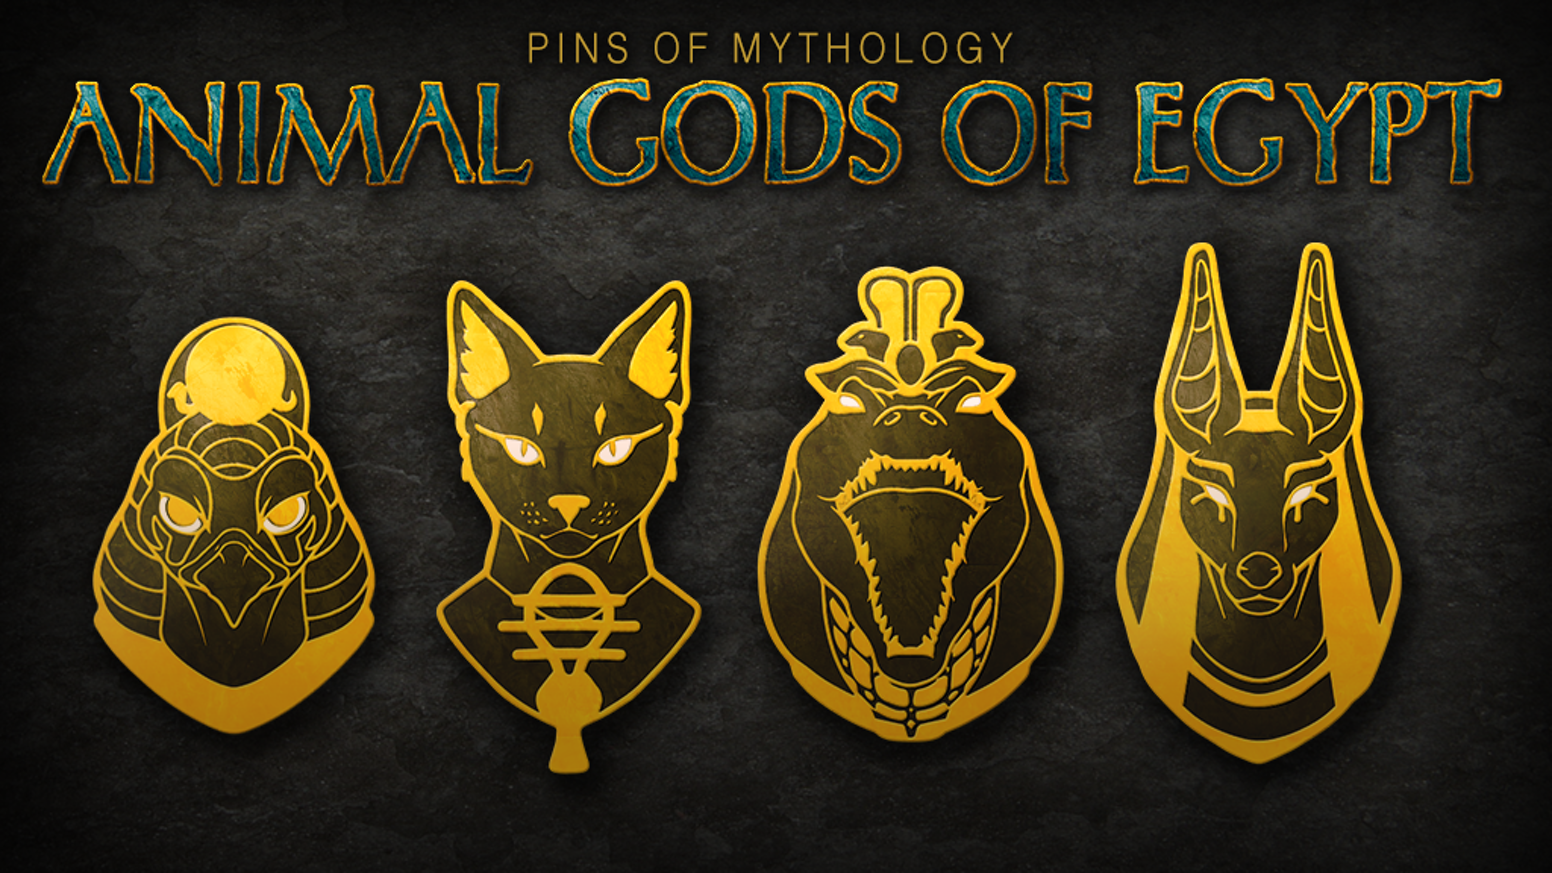 Pins of mythology animal gods of egypt by jessy smith kickstarter 15 gold hard enamel pins inspired by the animal gods of ancient egypt this publicscrutiny Image collections